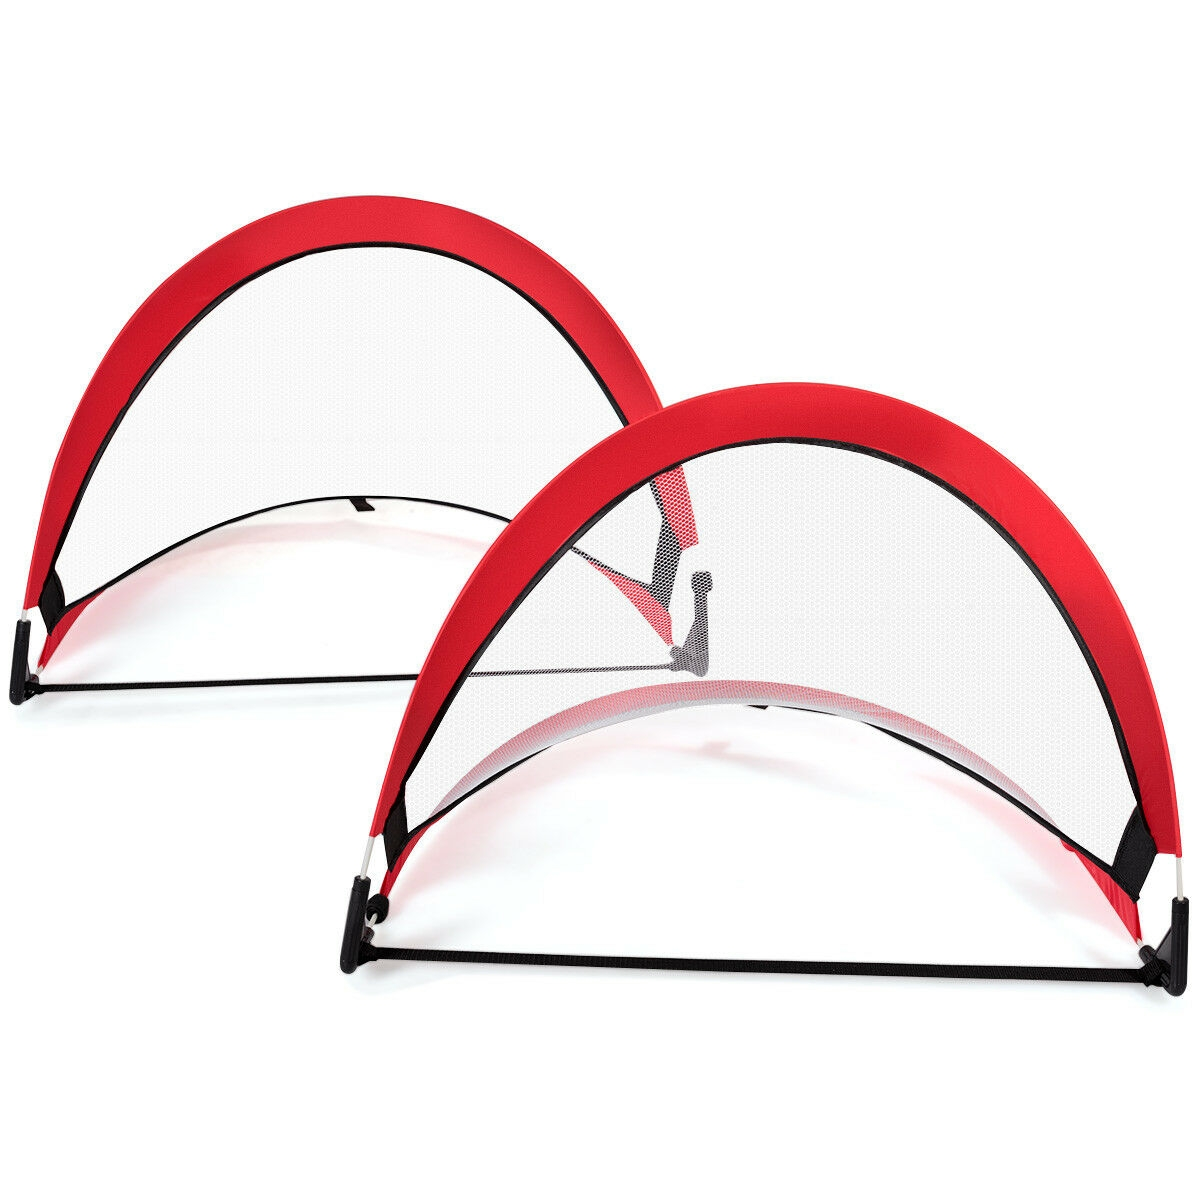 Two Pop Up Soccer Goal Set  Foldable Training Football Net-4'  free shipping worldwide